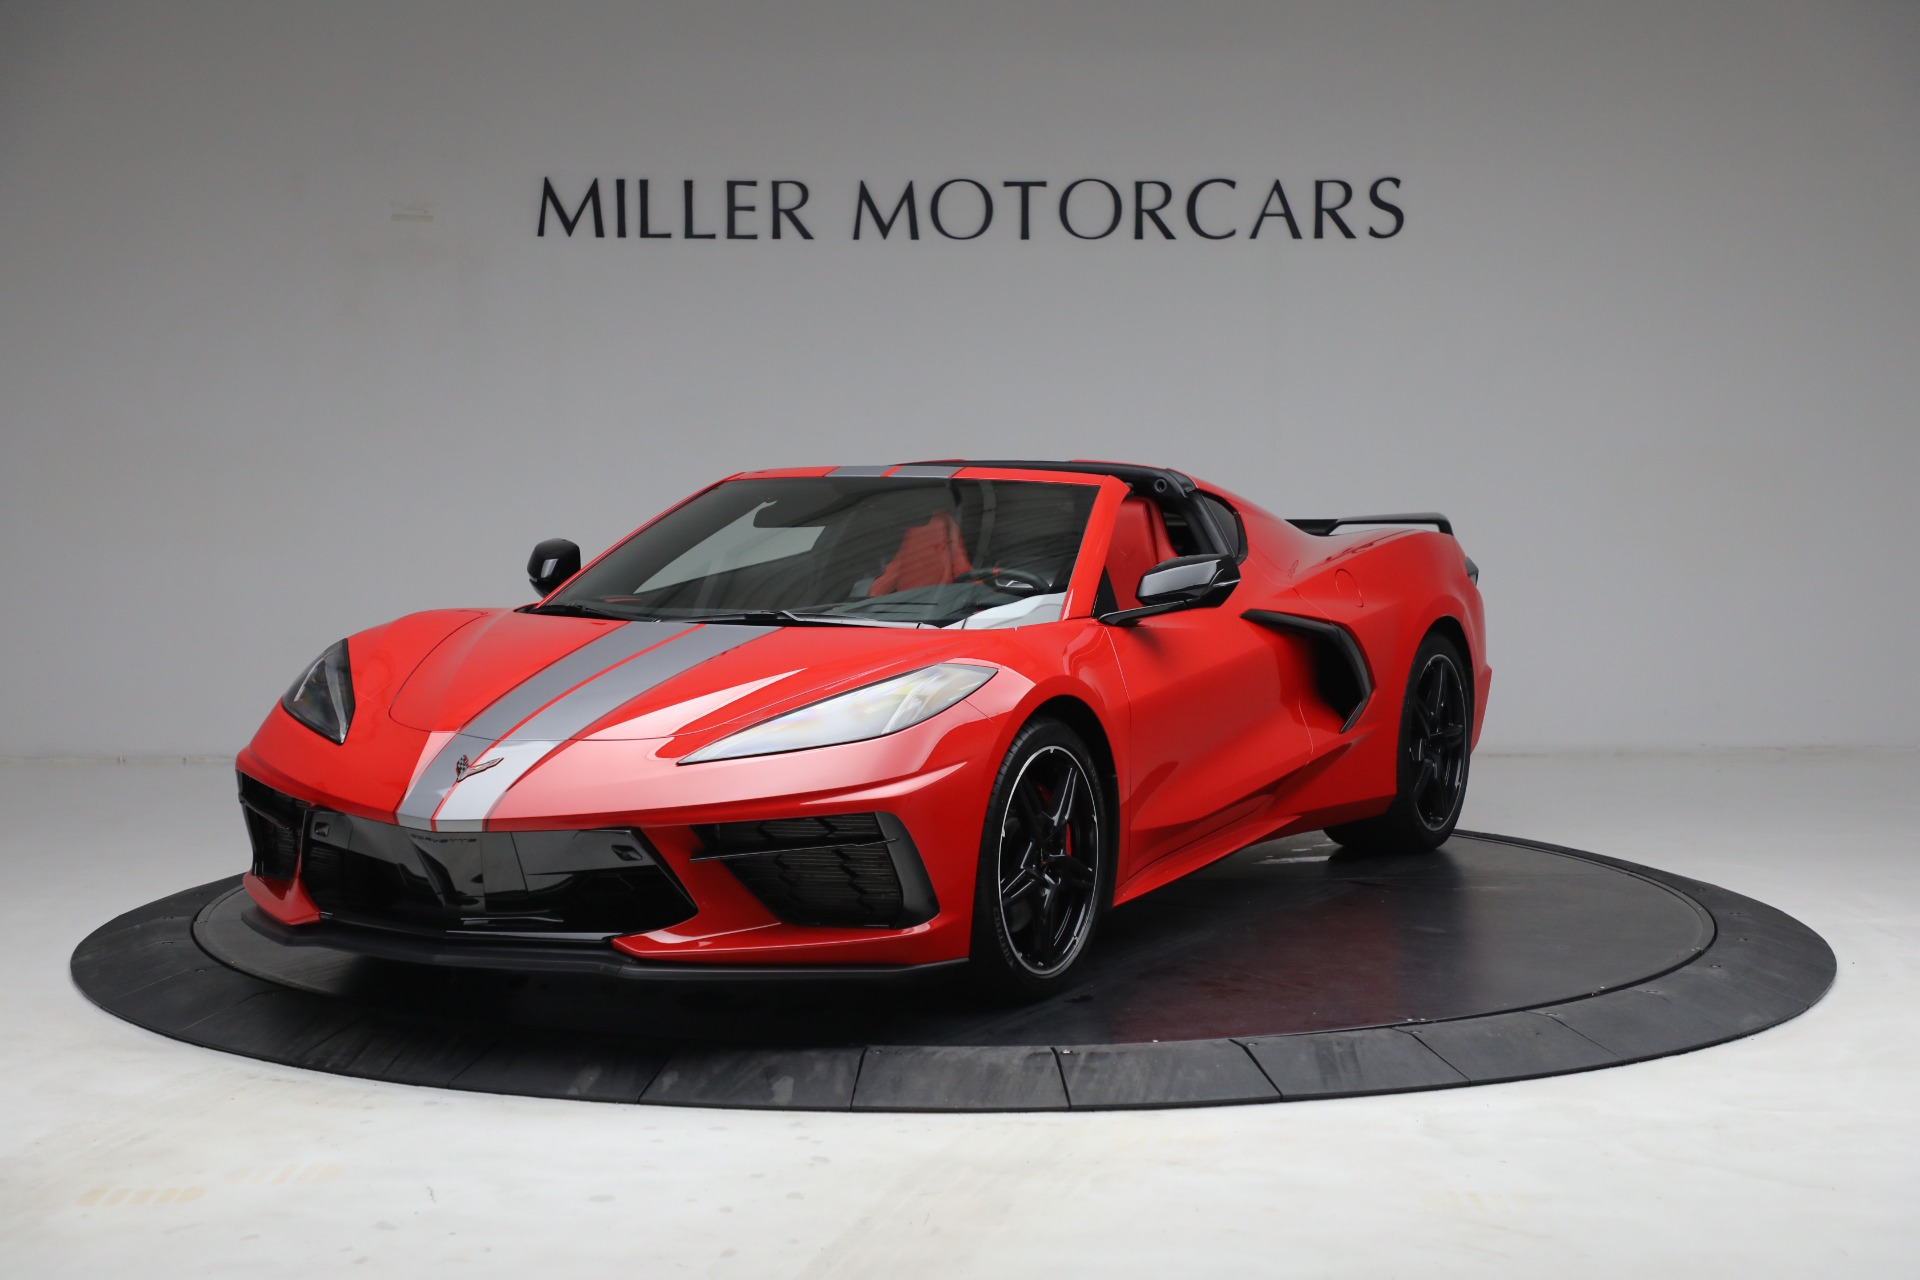 Used 2020 Chevrolet Corvette Stingray for sale Sold at Aston Martin of Greenwich in Greenwich CT 06830 1